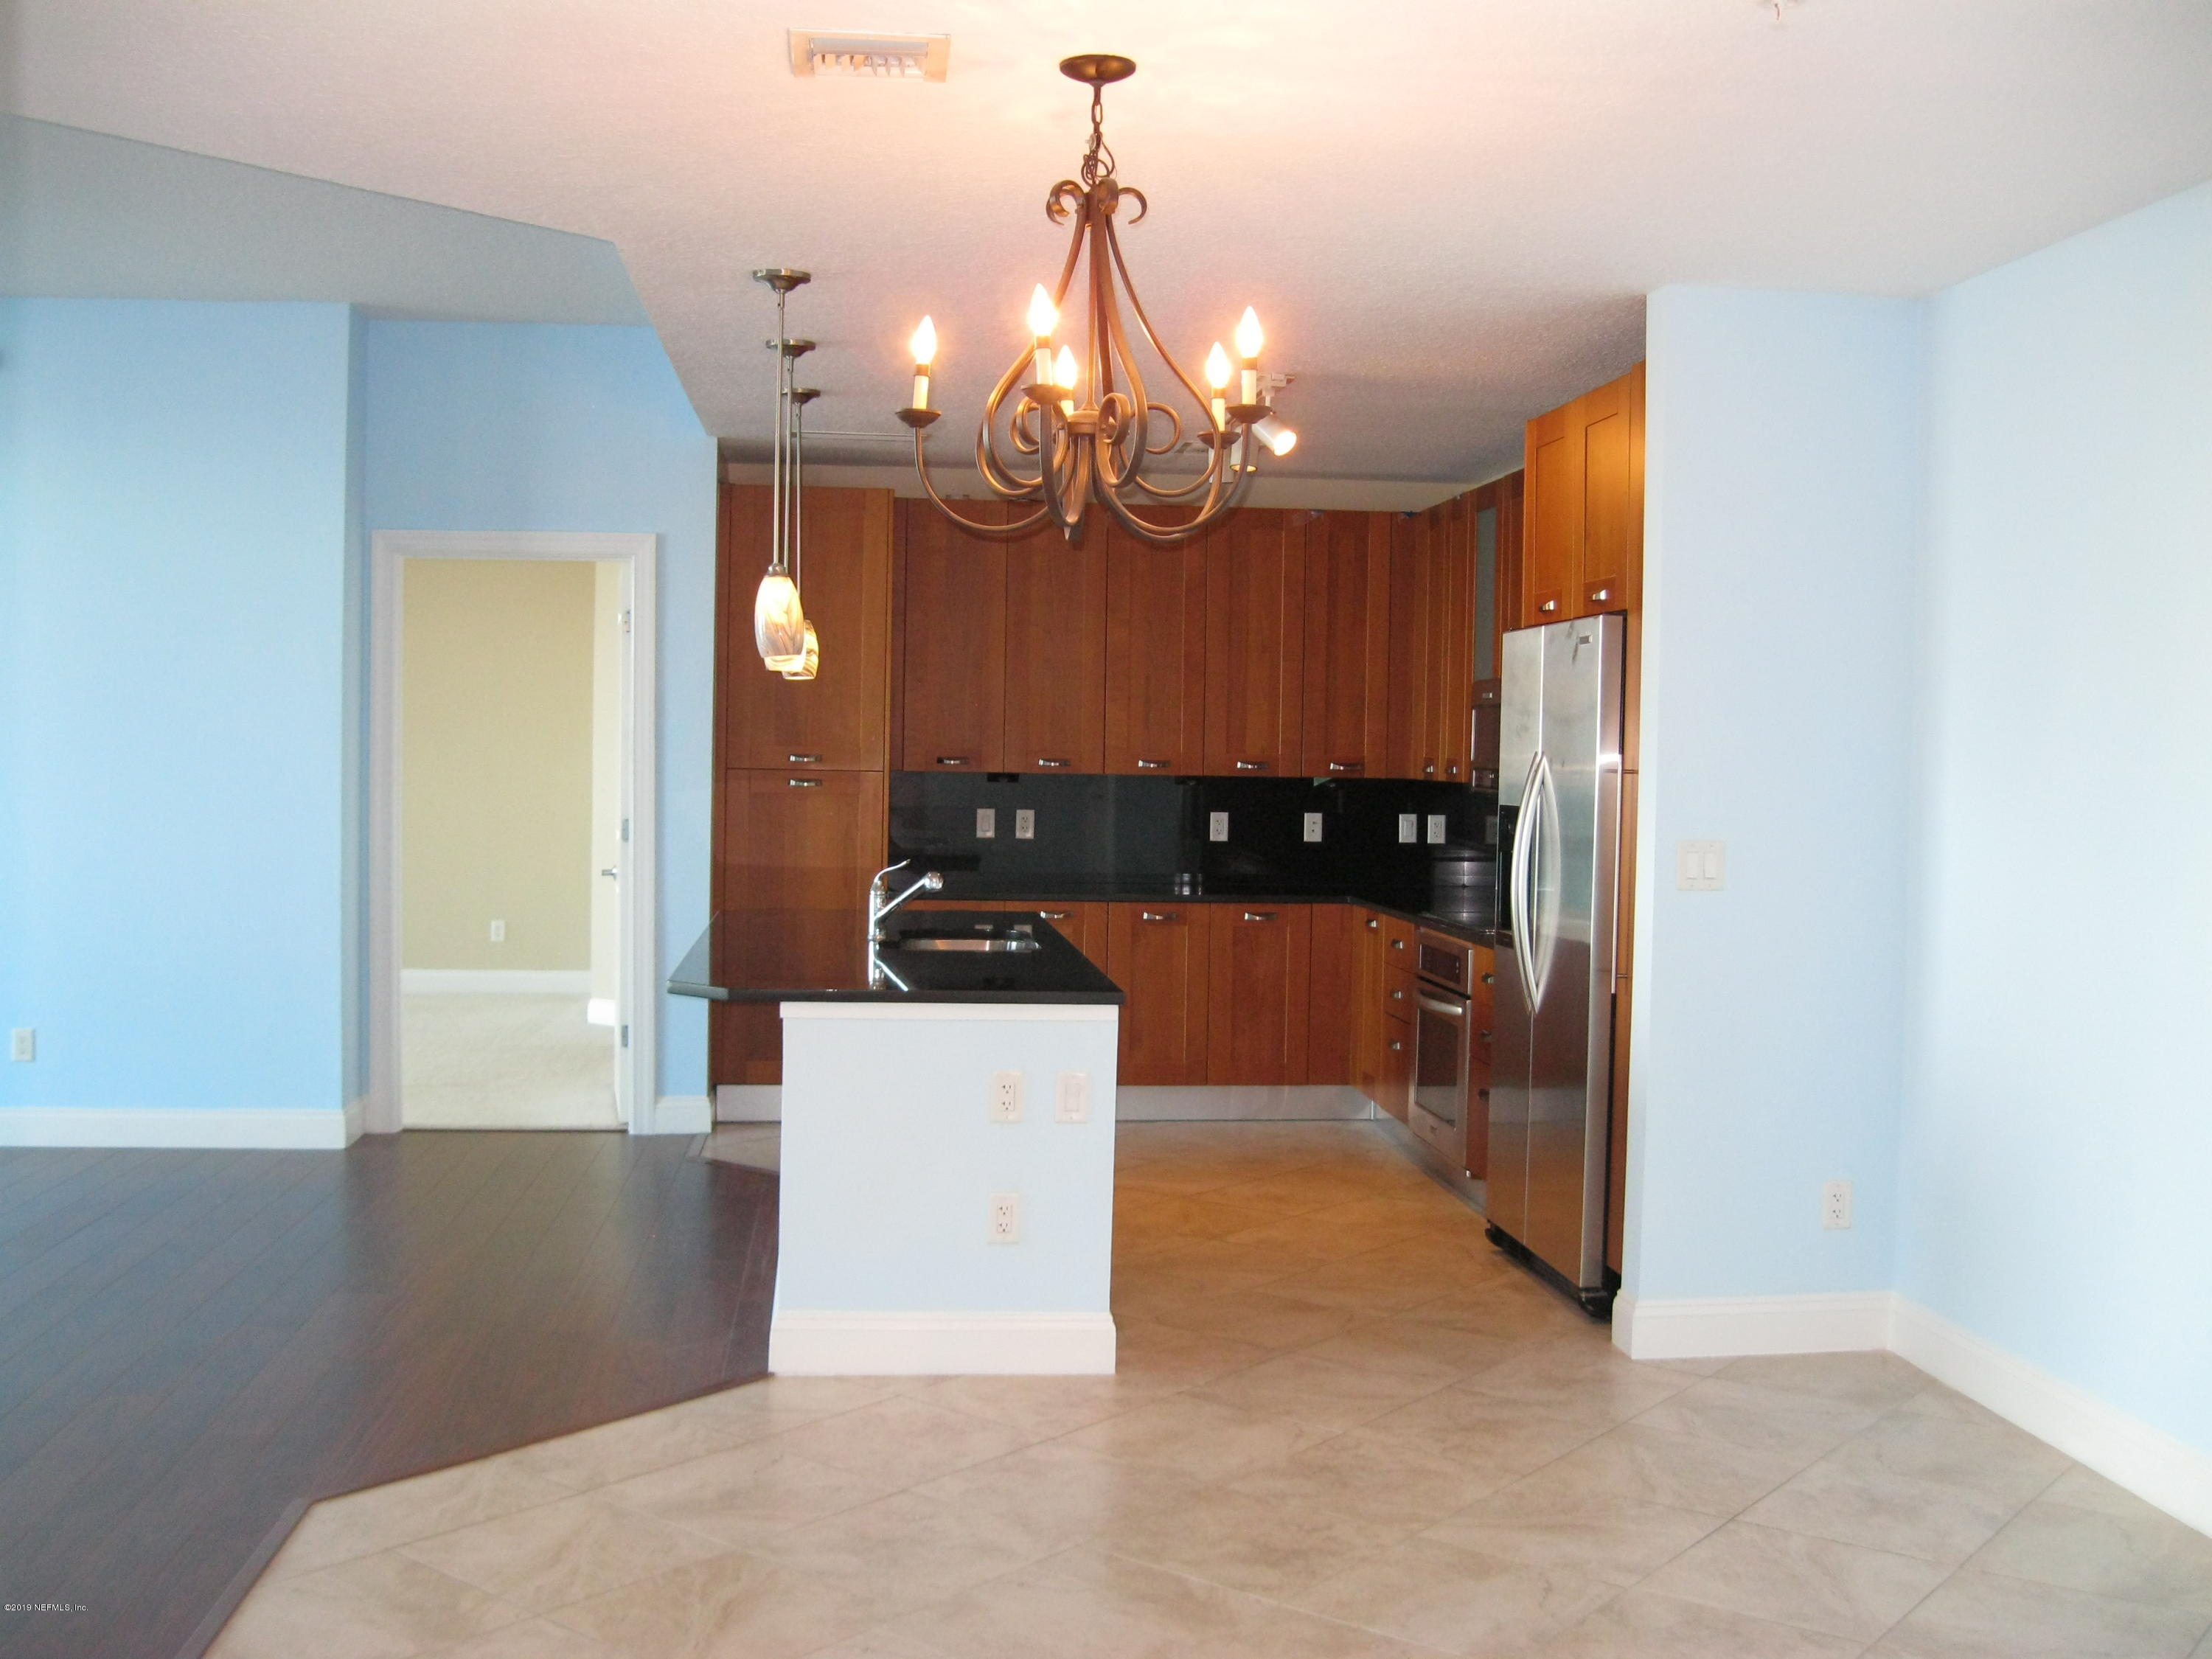 1431 RIVERPLACE, JACKSONVILLE, FLORIDA 32207, 2 Bedrooms Bedrooms, ,2 BathroomsBathrooms,Residential - condos/townhomes,For sale,RIVERPLACE,975207